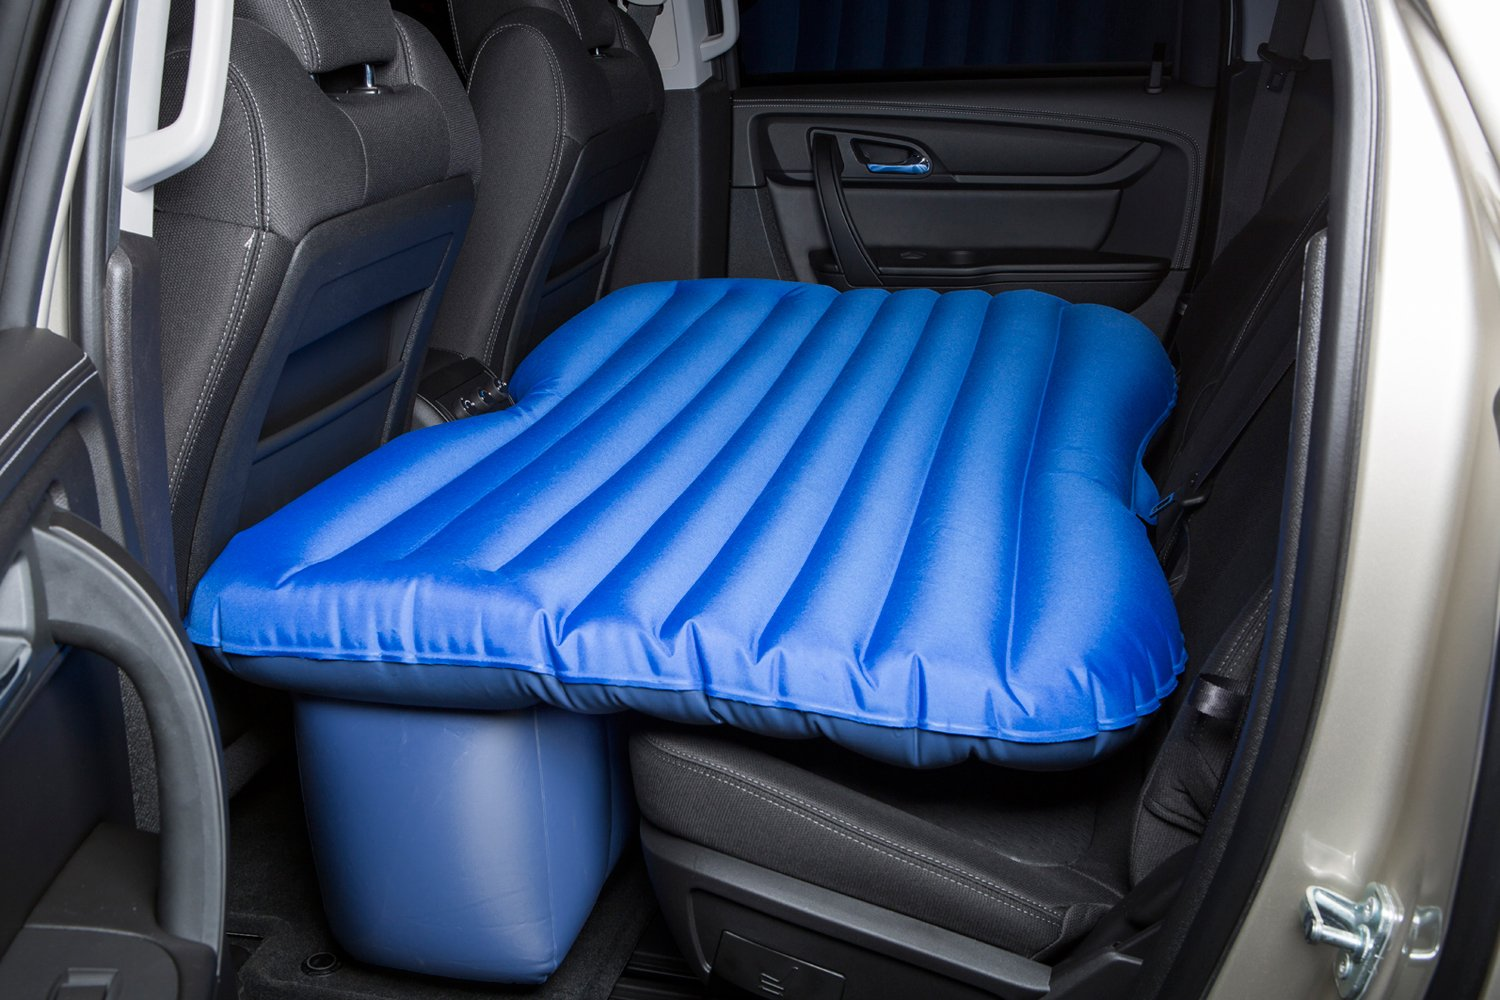 AirBedz Backseat Air Mattress